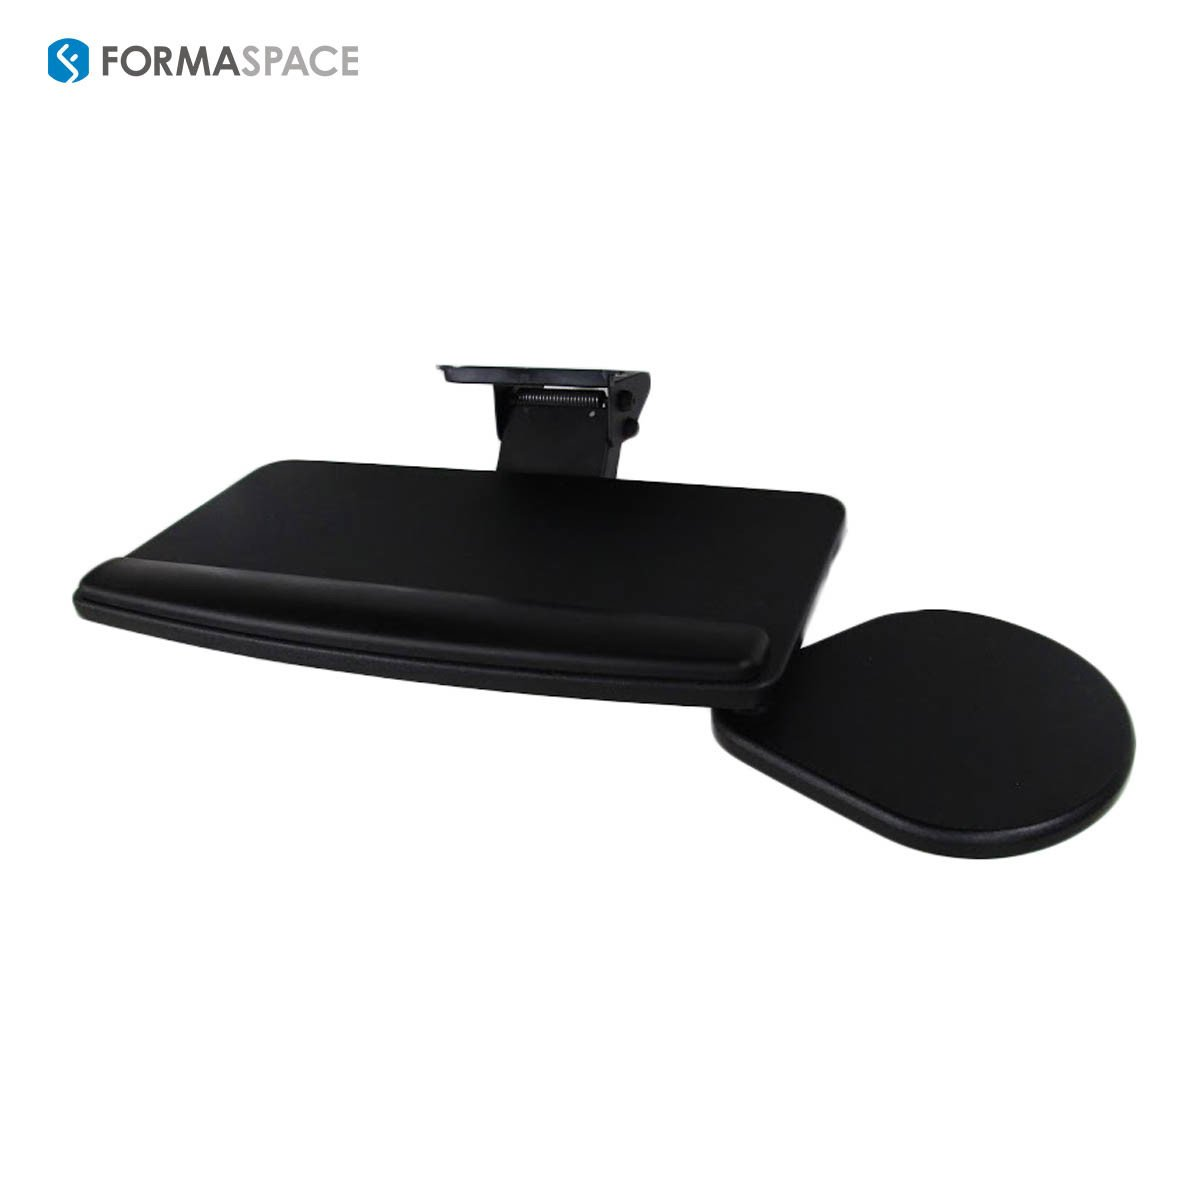 keyboard tray and mouse dock